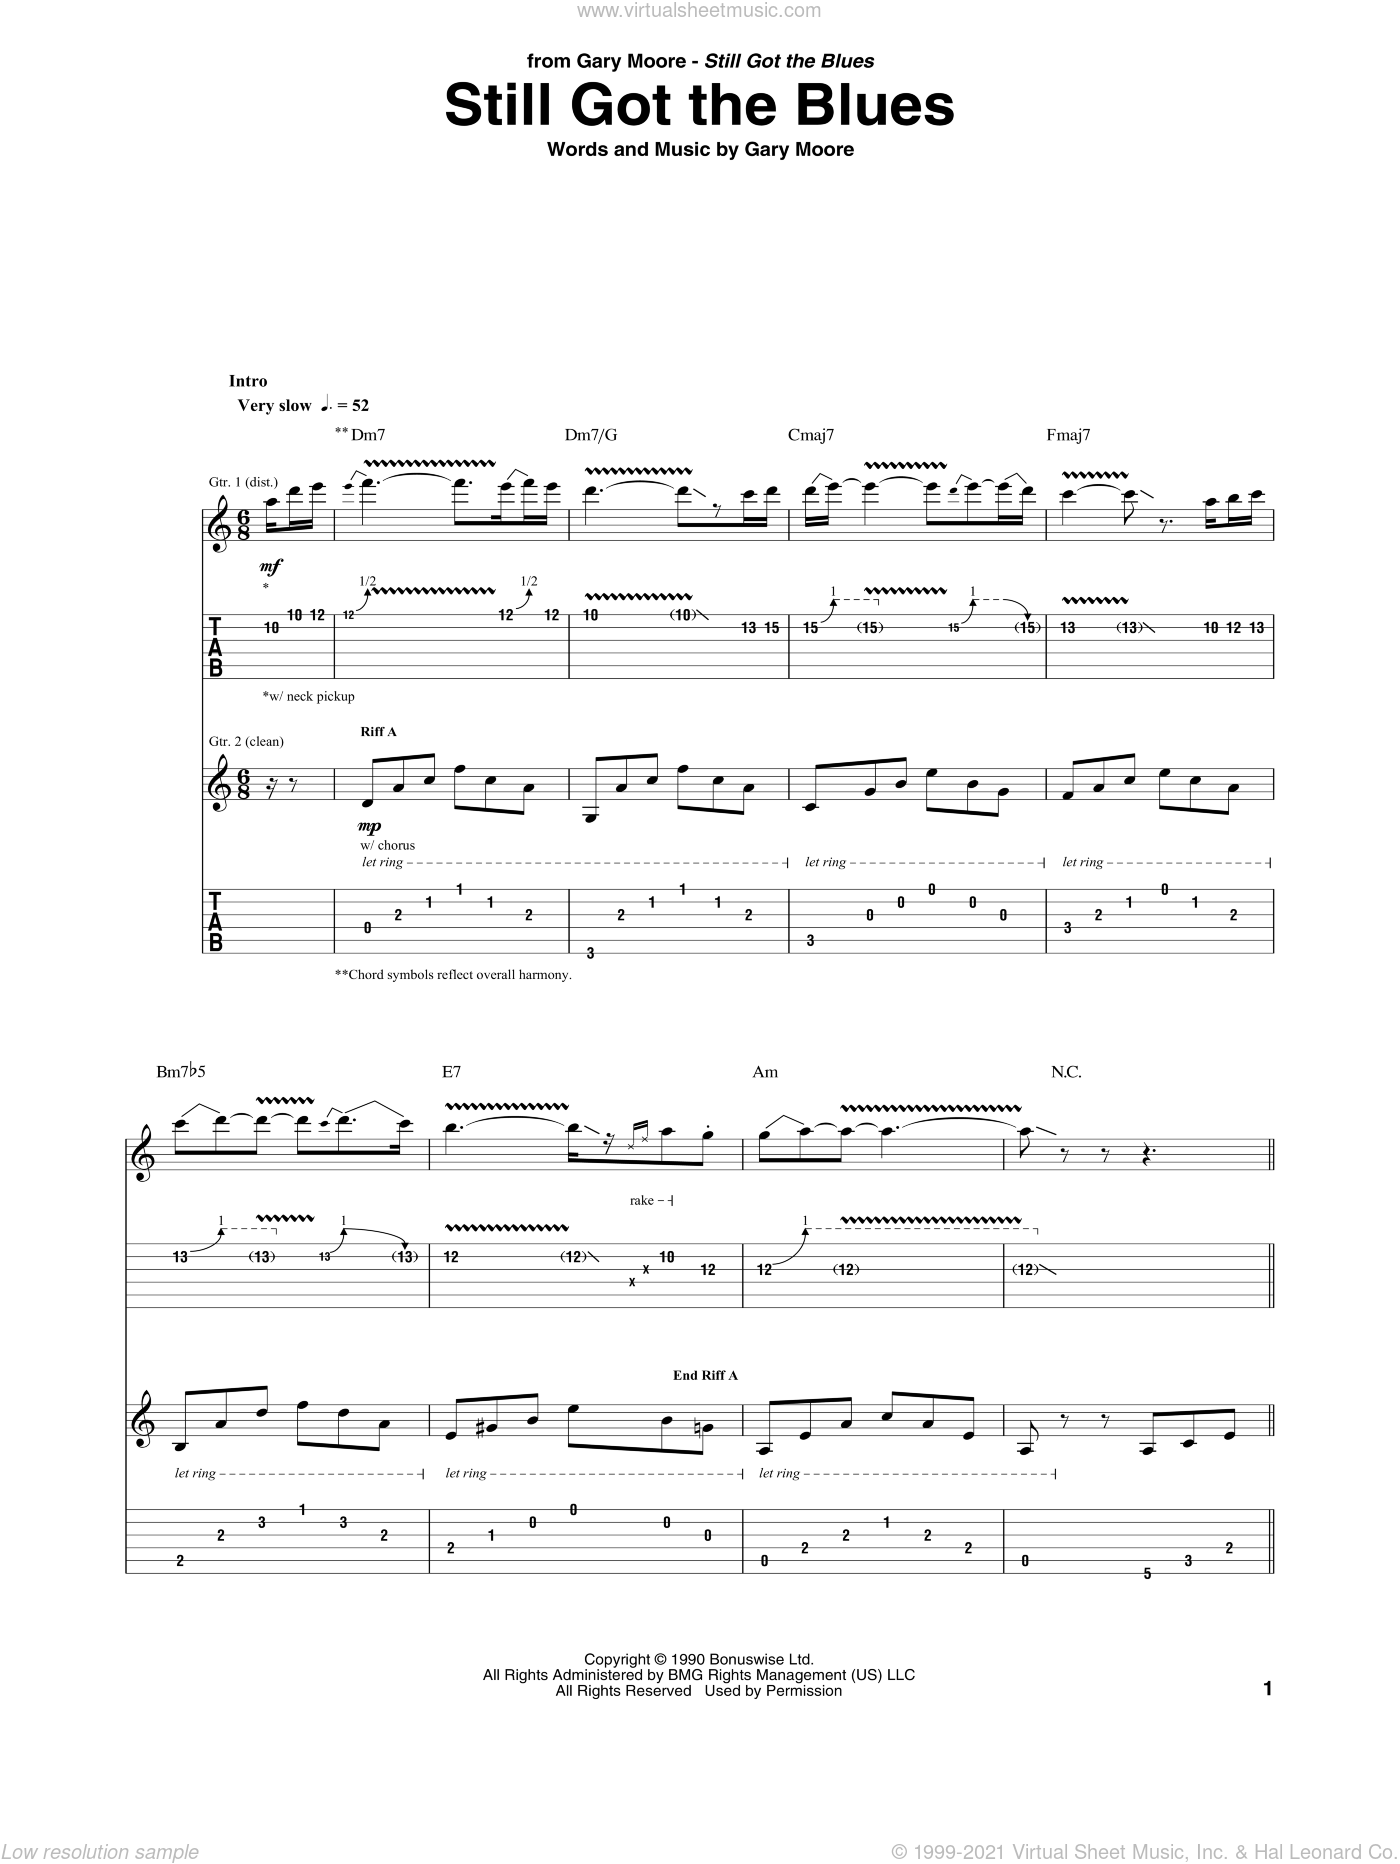 Still got the blues chords pdf